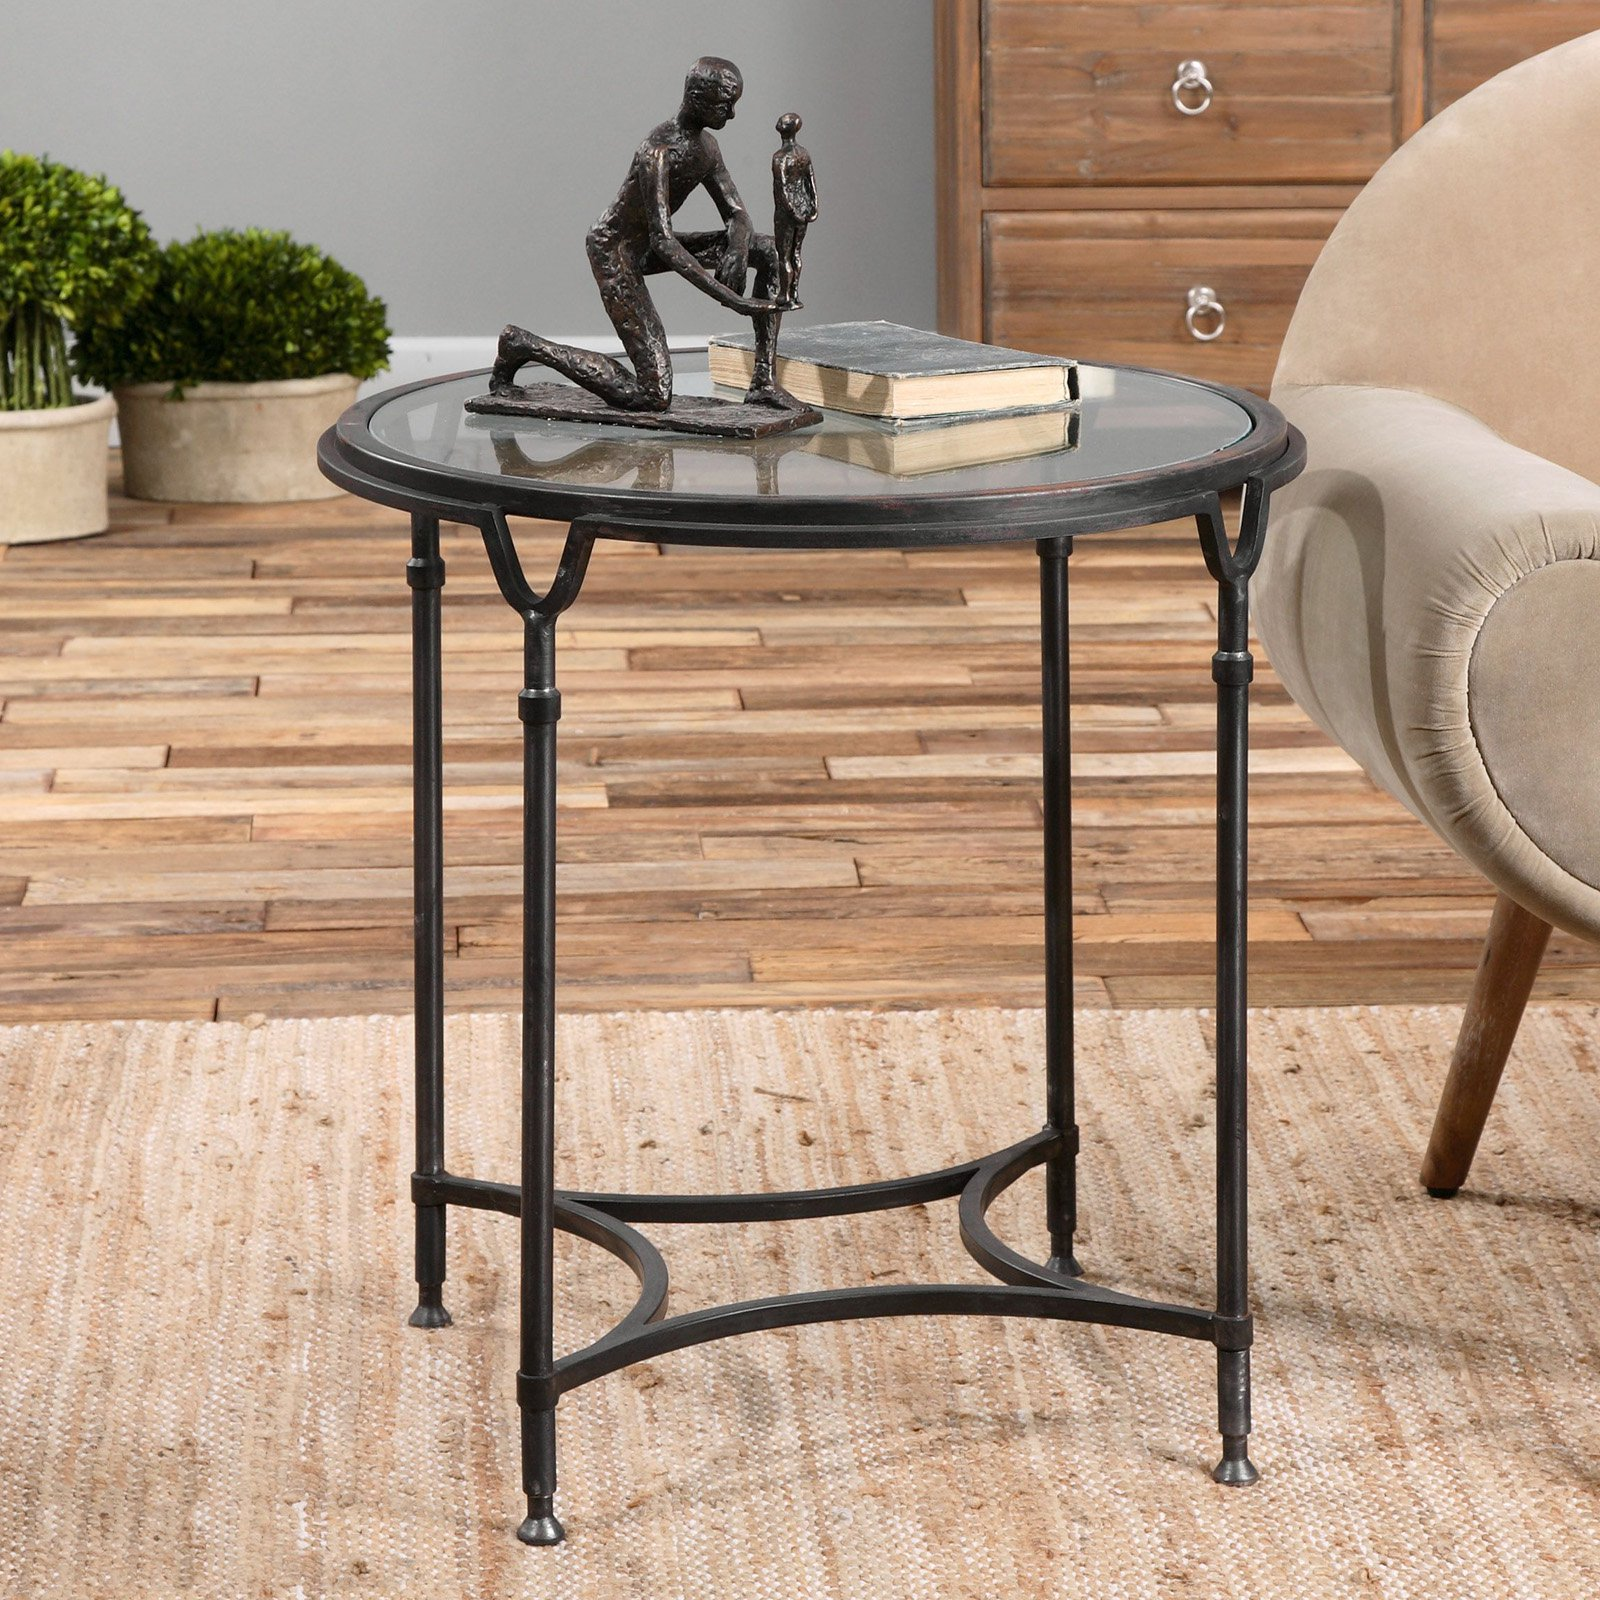 uttermost samson glass side table products in 2019 glass side rh pinterest com